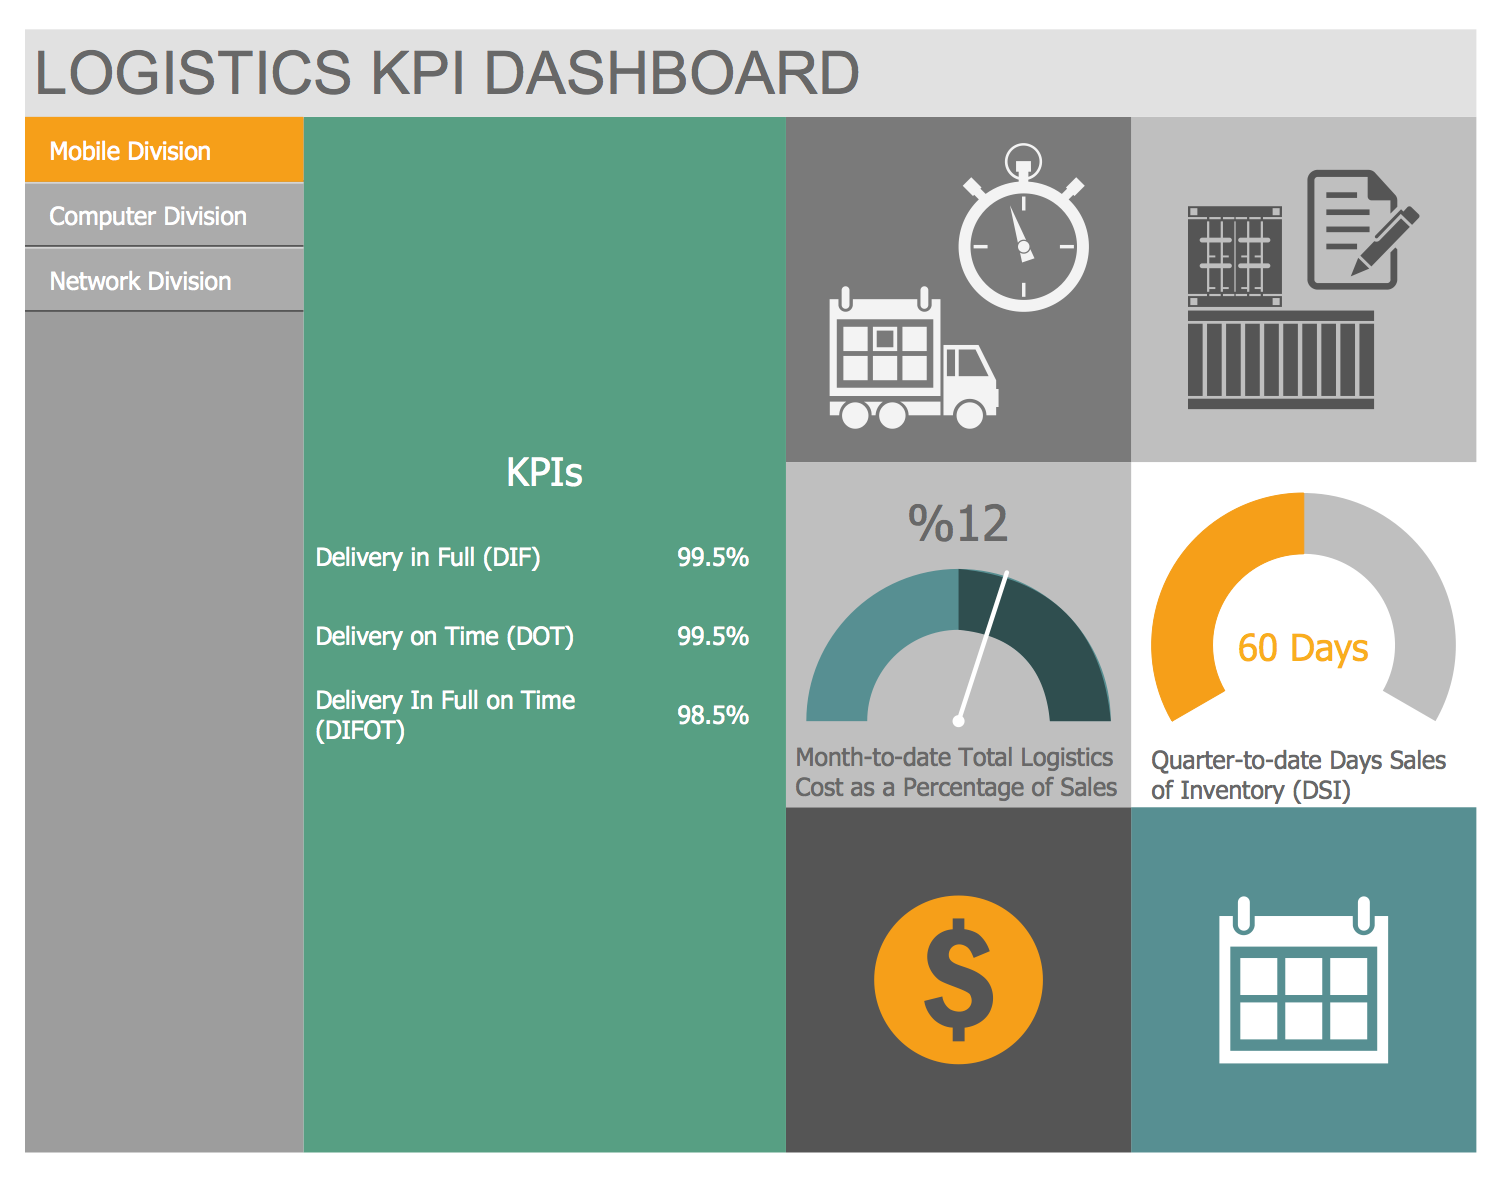 Logistics KPI Dashboard